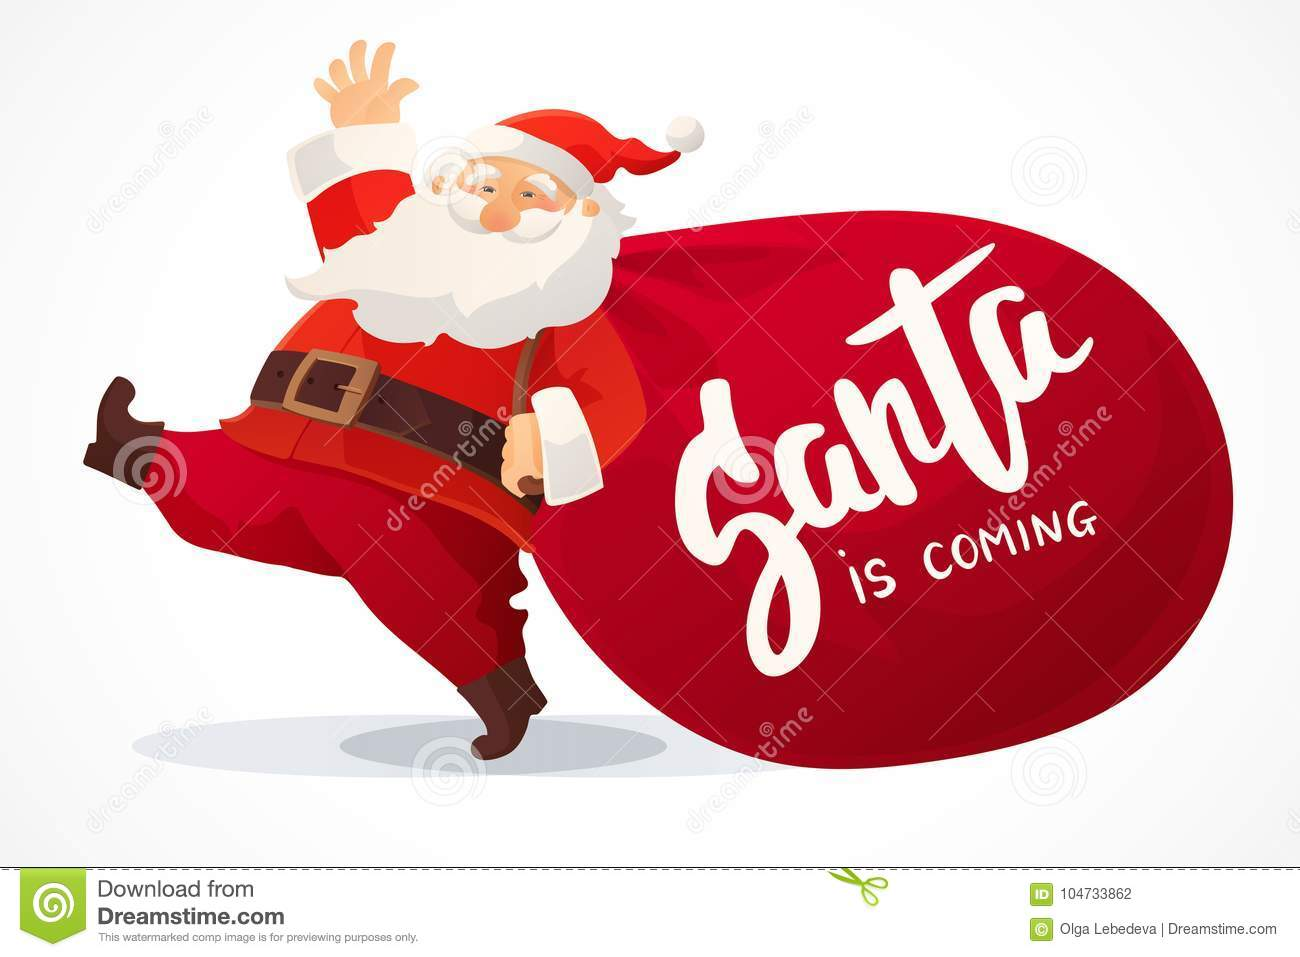 Huge Christmas Card.Christmas Card Funny Cartoon Santa Claus With Huge Red Bag With